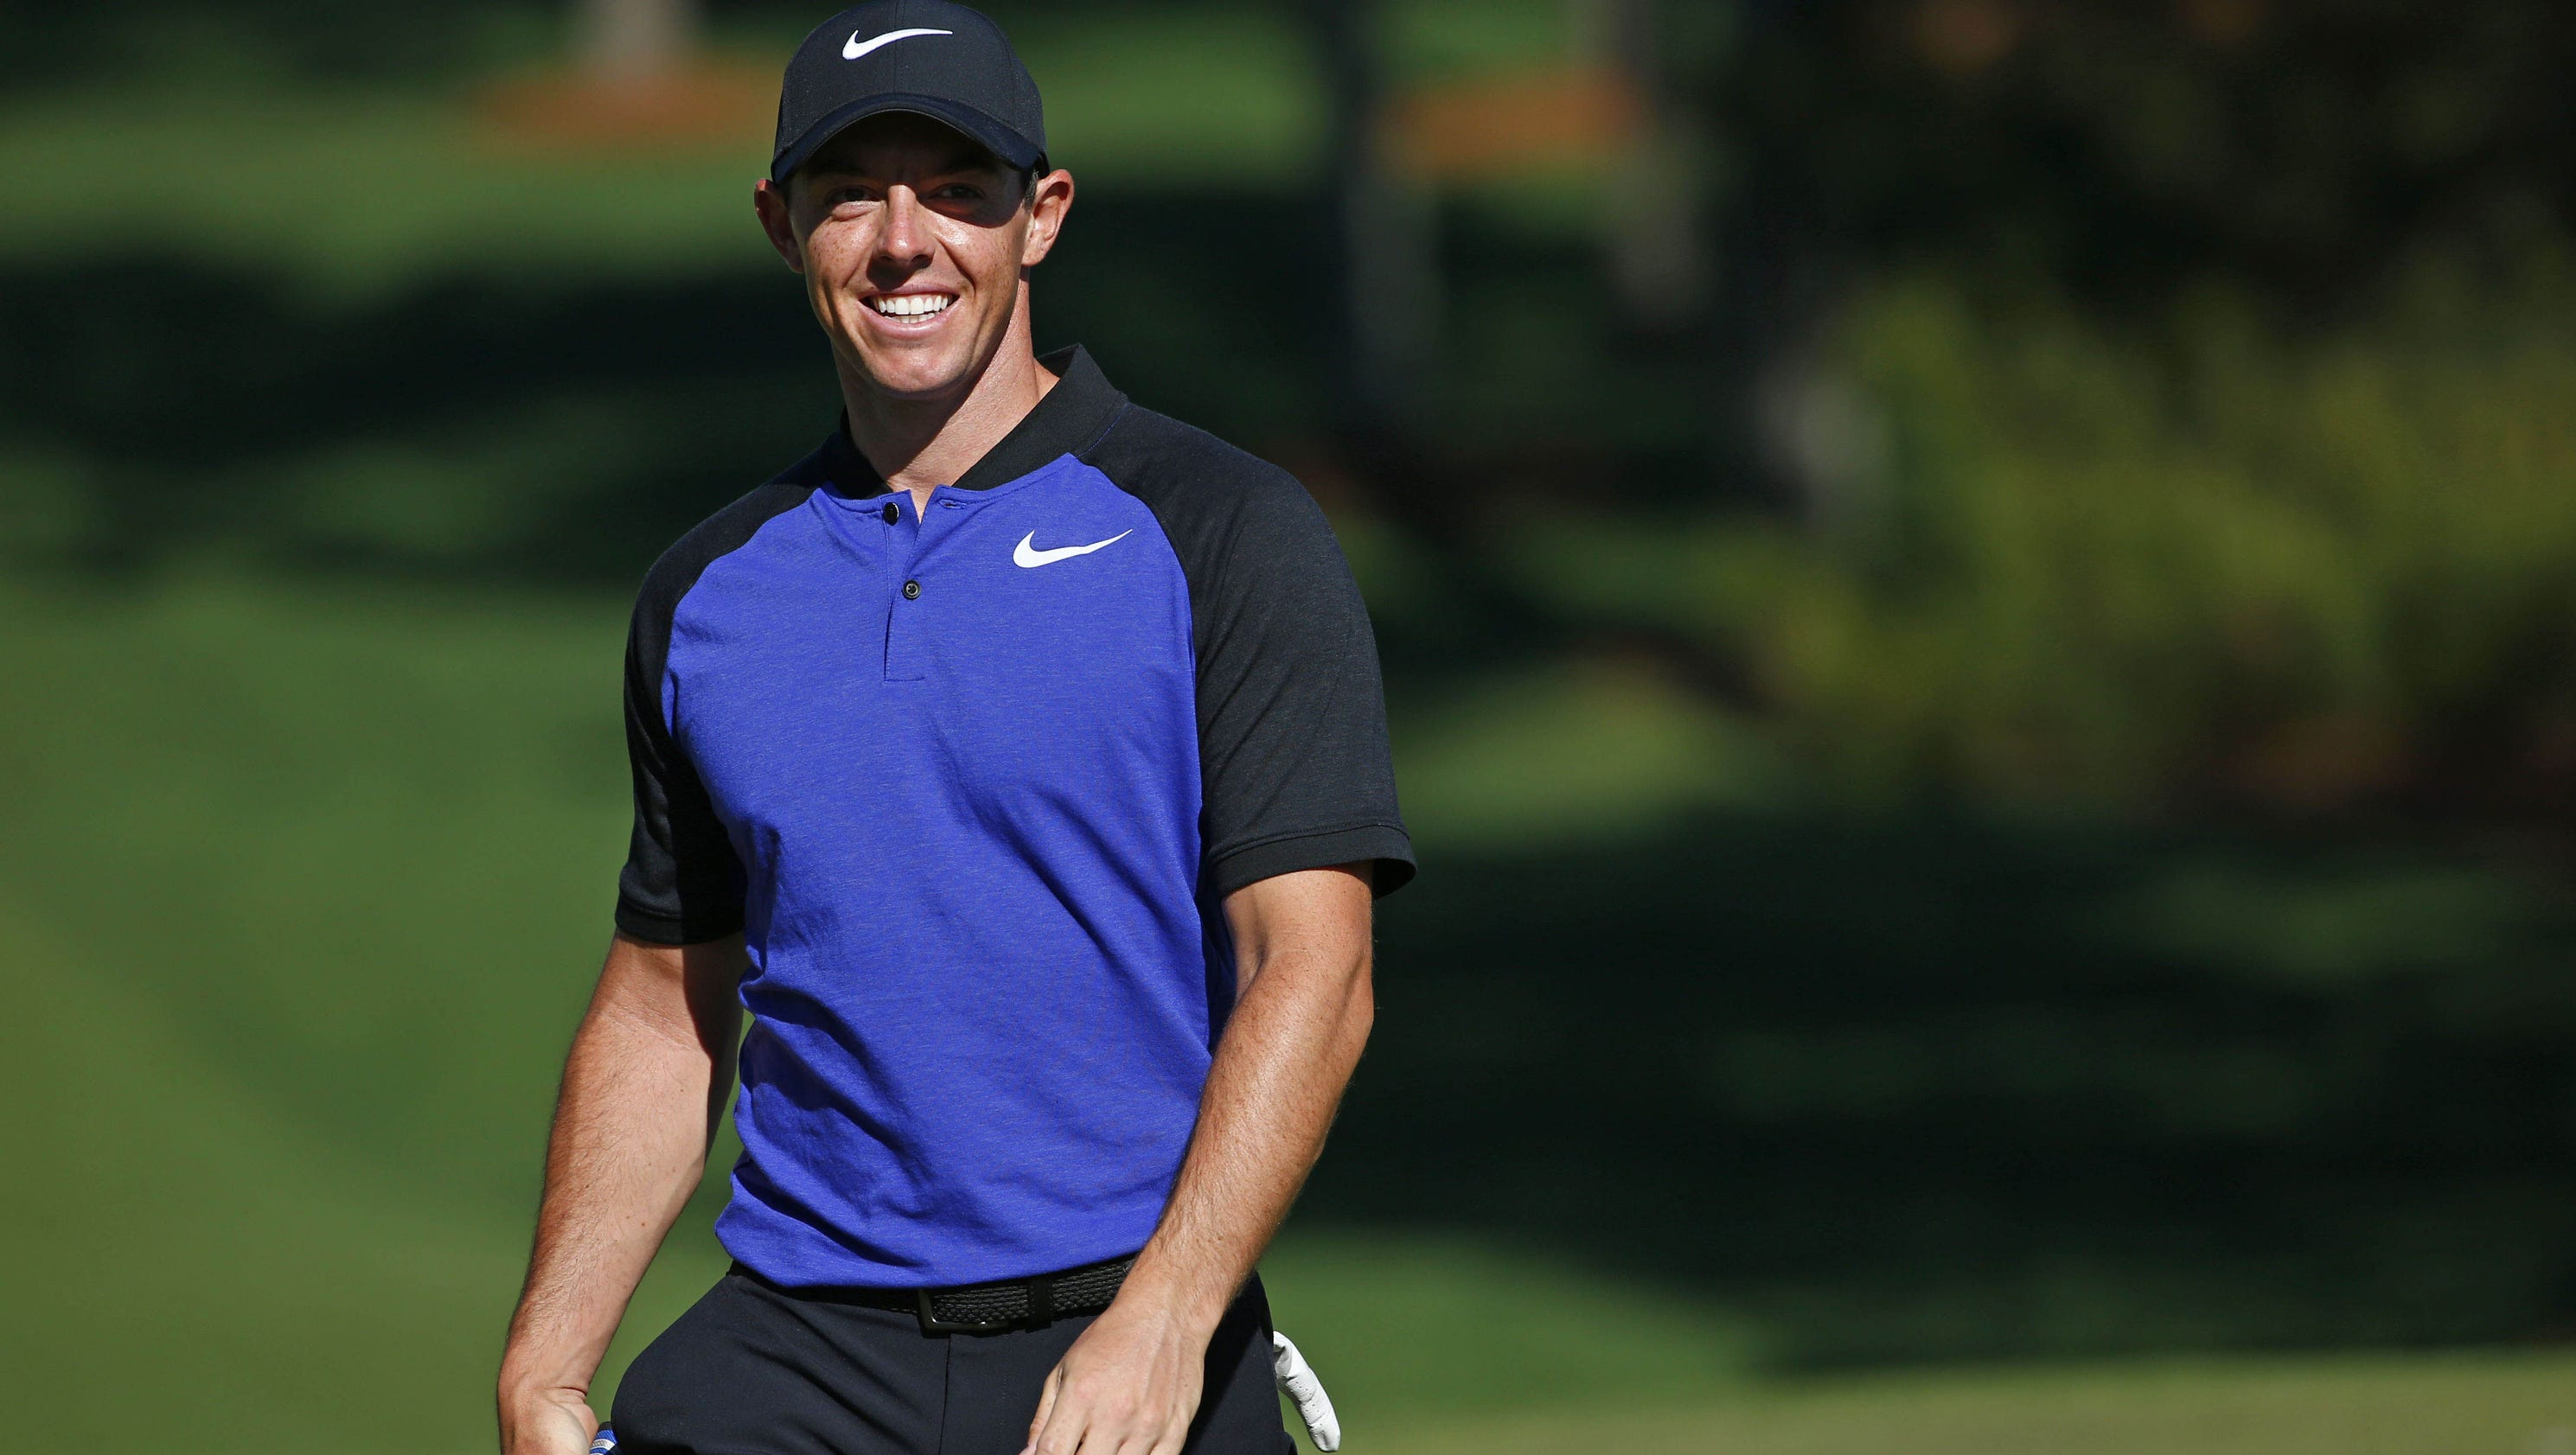 Rory McIlroy has second thoughts on another round with Donald Trump